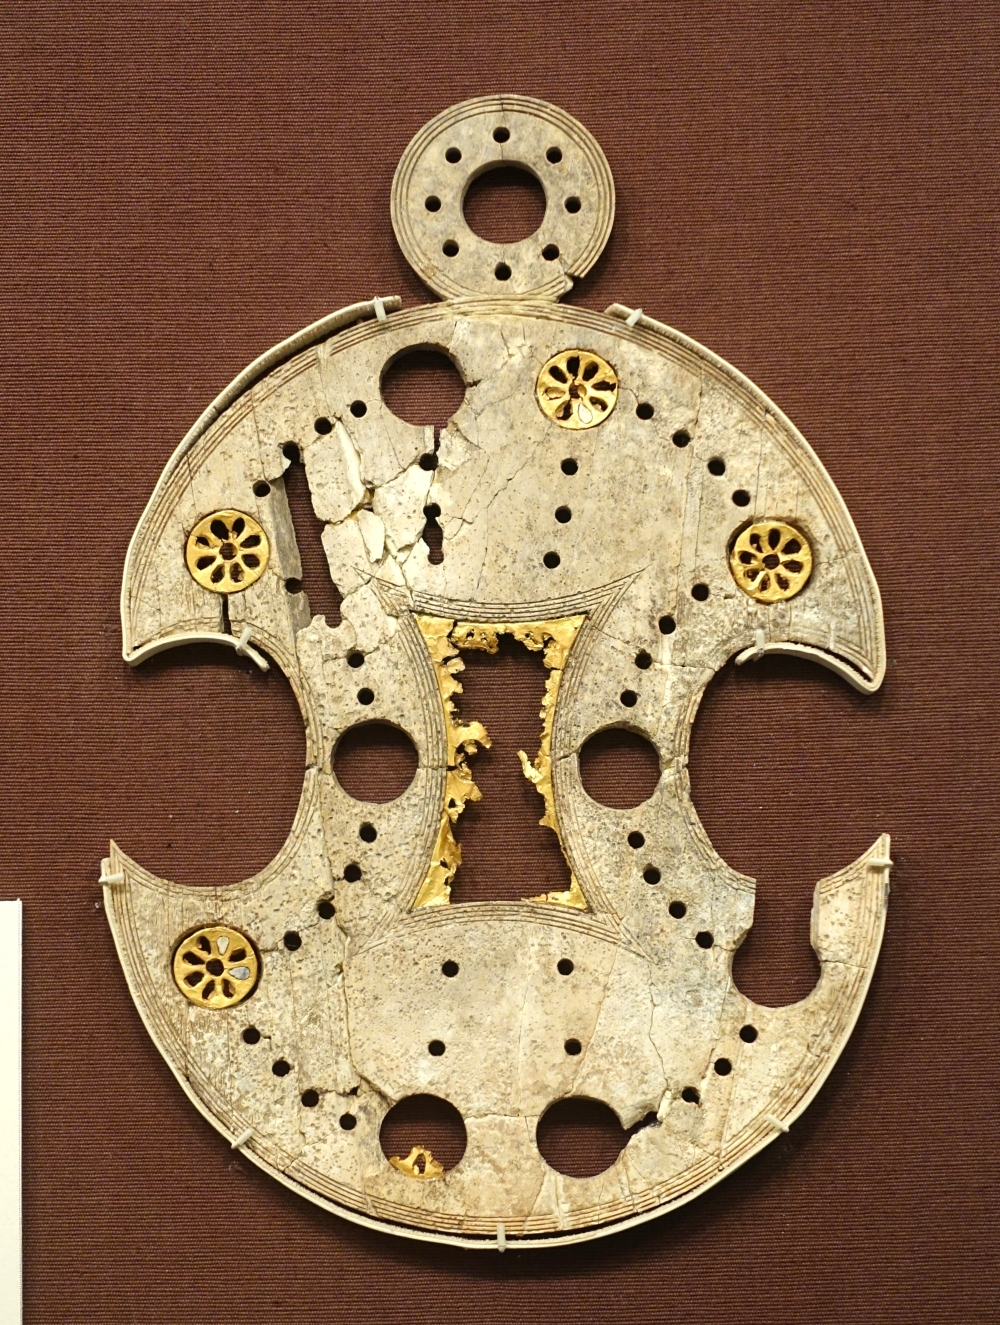 58 Holes Megiddo,_Stratum_VIIA,_Late_Bronze_IIB,_1300-1200_BC,_ivory_and_gold_-_Oriental_Institute_Museum,_University_of_Chicago_-_DSC07719